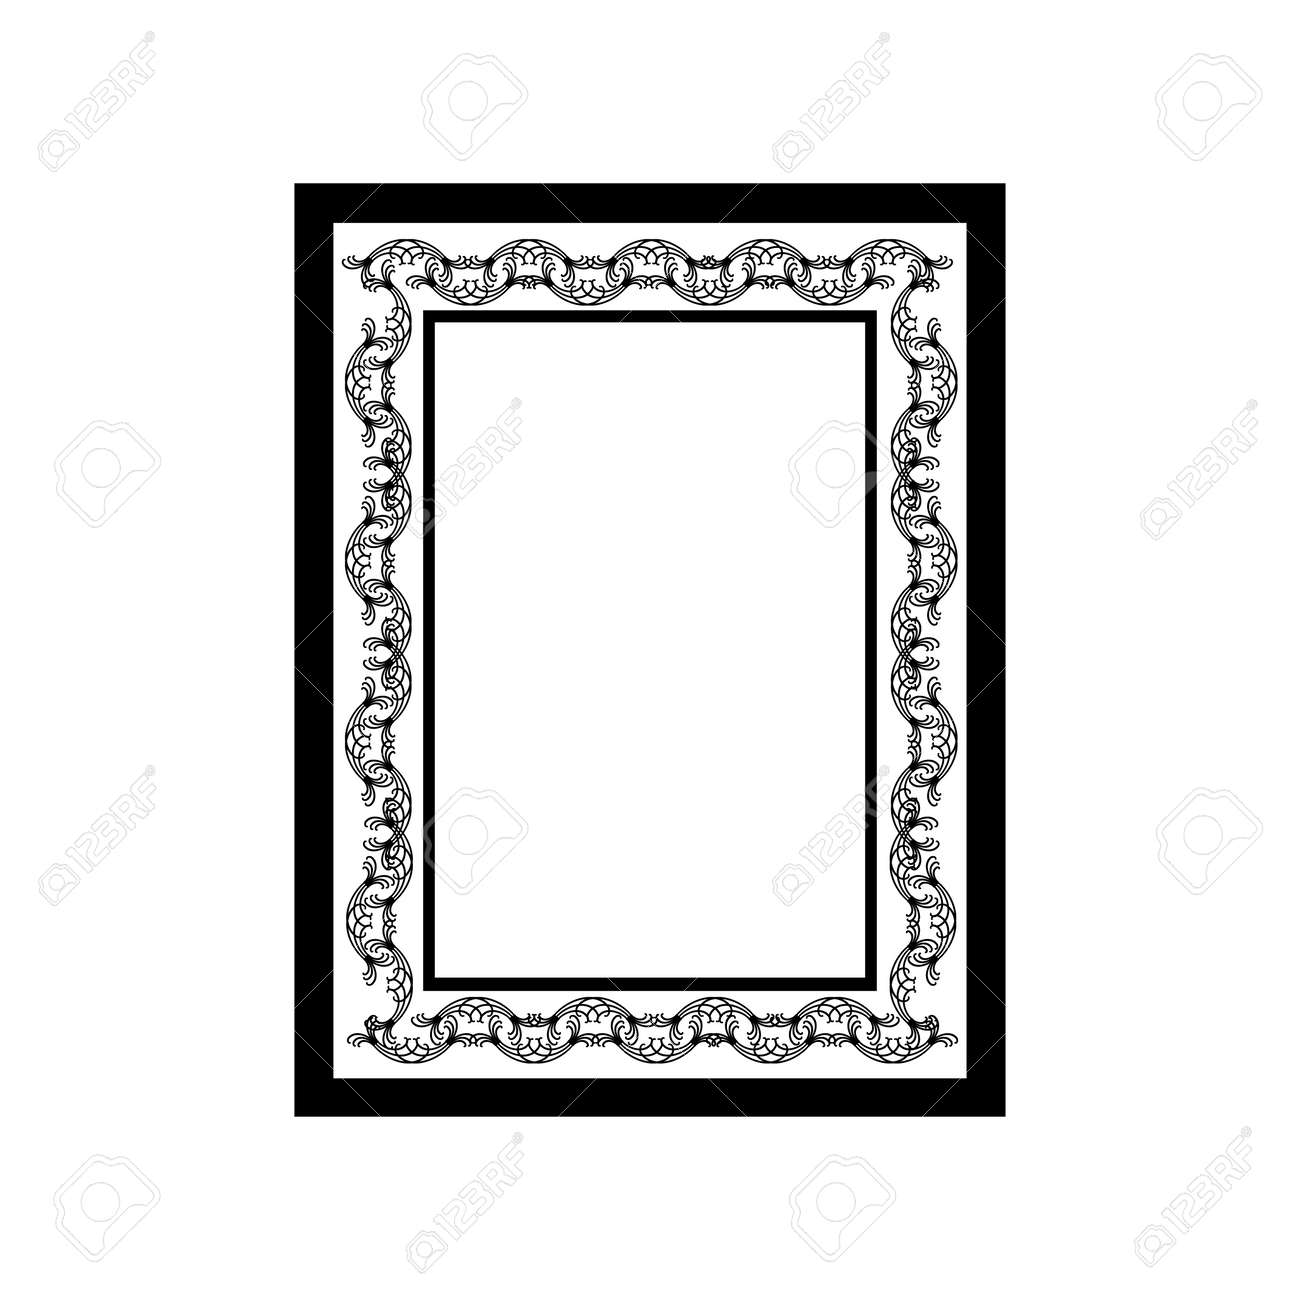 Frame with wavy line. Fashion graphic background design. Modern stylish abstract texture. Monochrome template for prints, textiles, wrapping, wallpaper, website. Design element. Vector illustration - 149913601